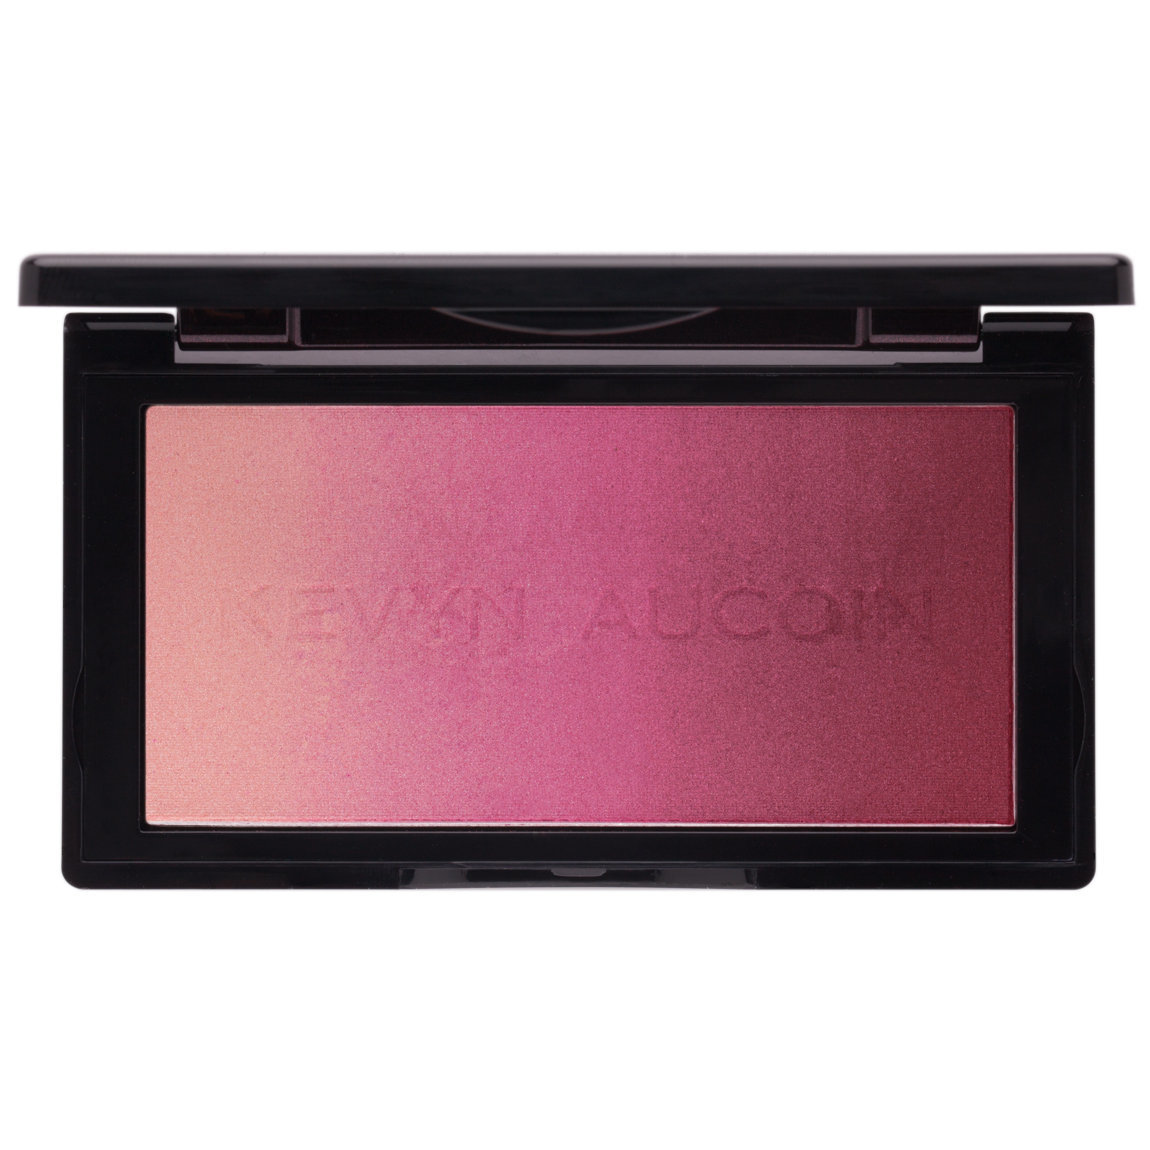 Kevyn Aucoin The Neo-Blush Grapevine product swatch.